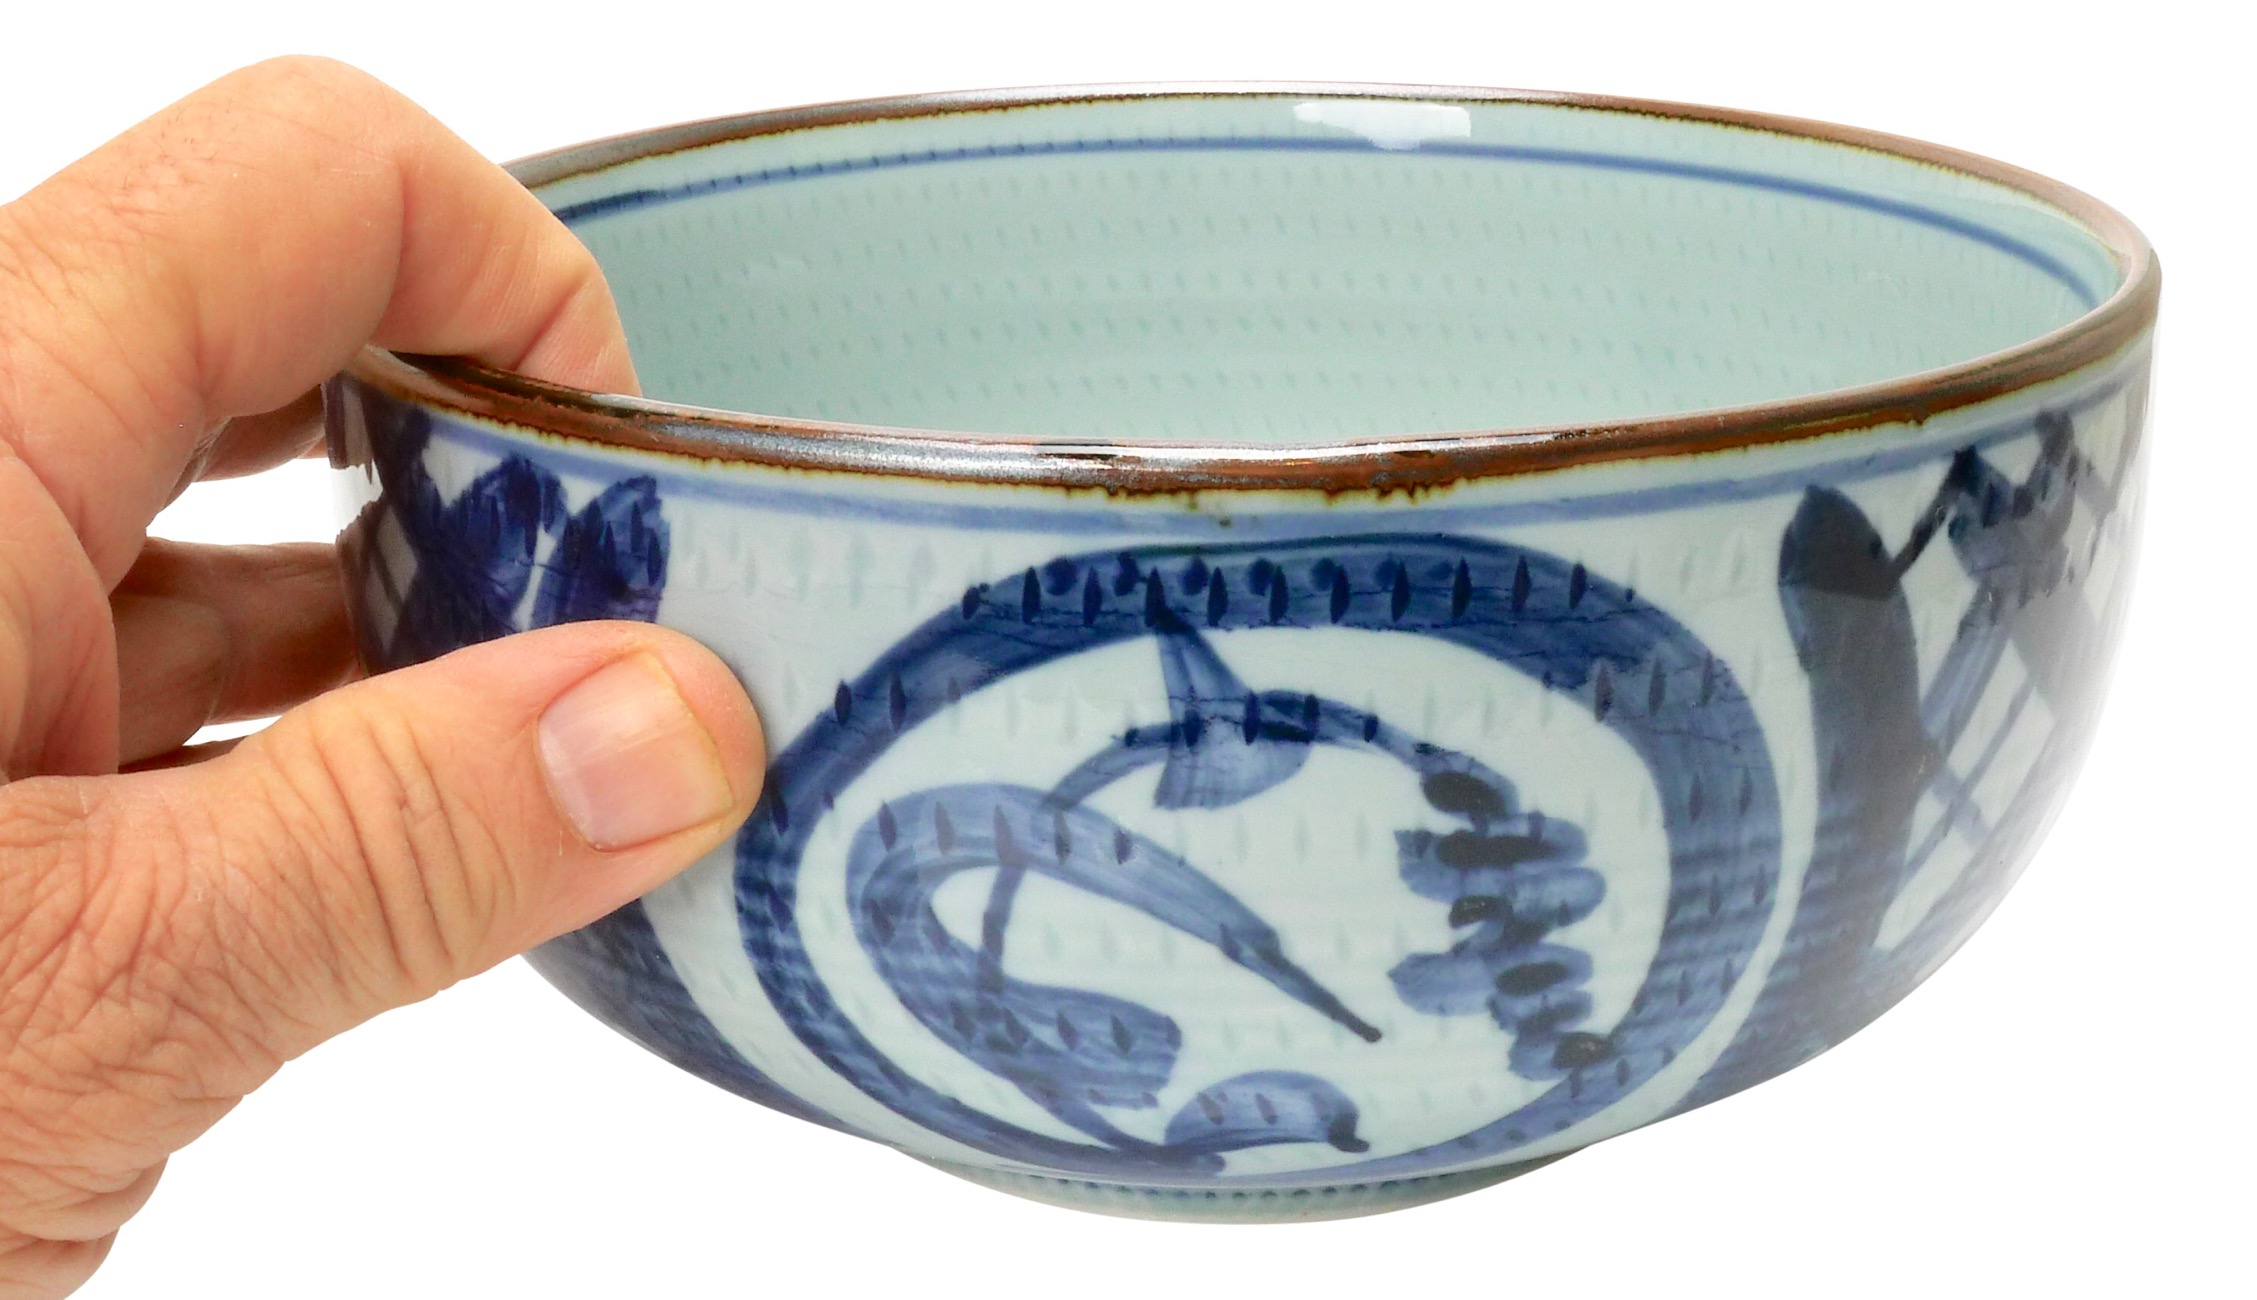 Image of Handmade Vintage White Porcelain Bowls with Bold Blue Brushstrokes